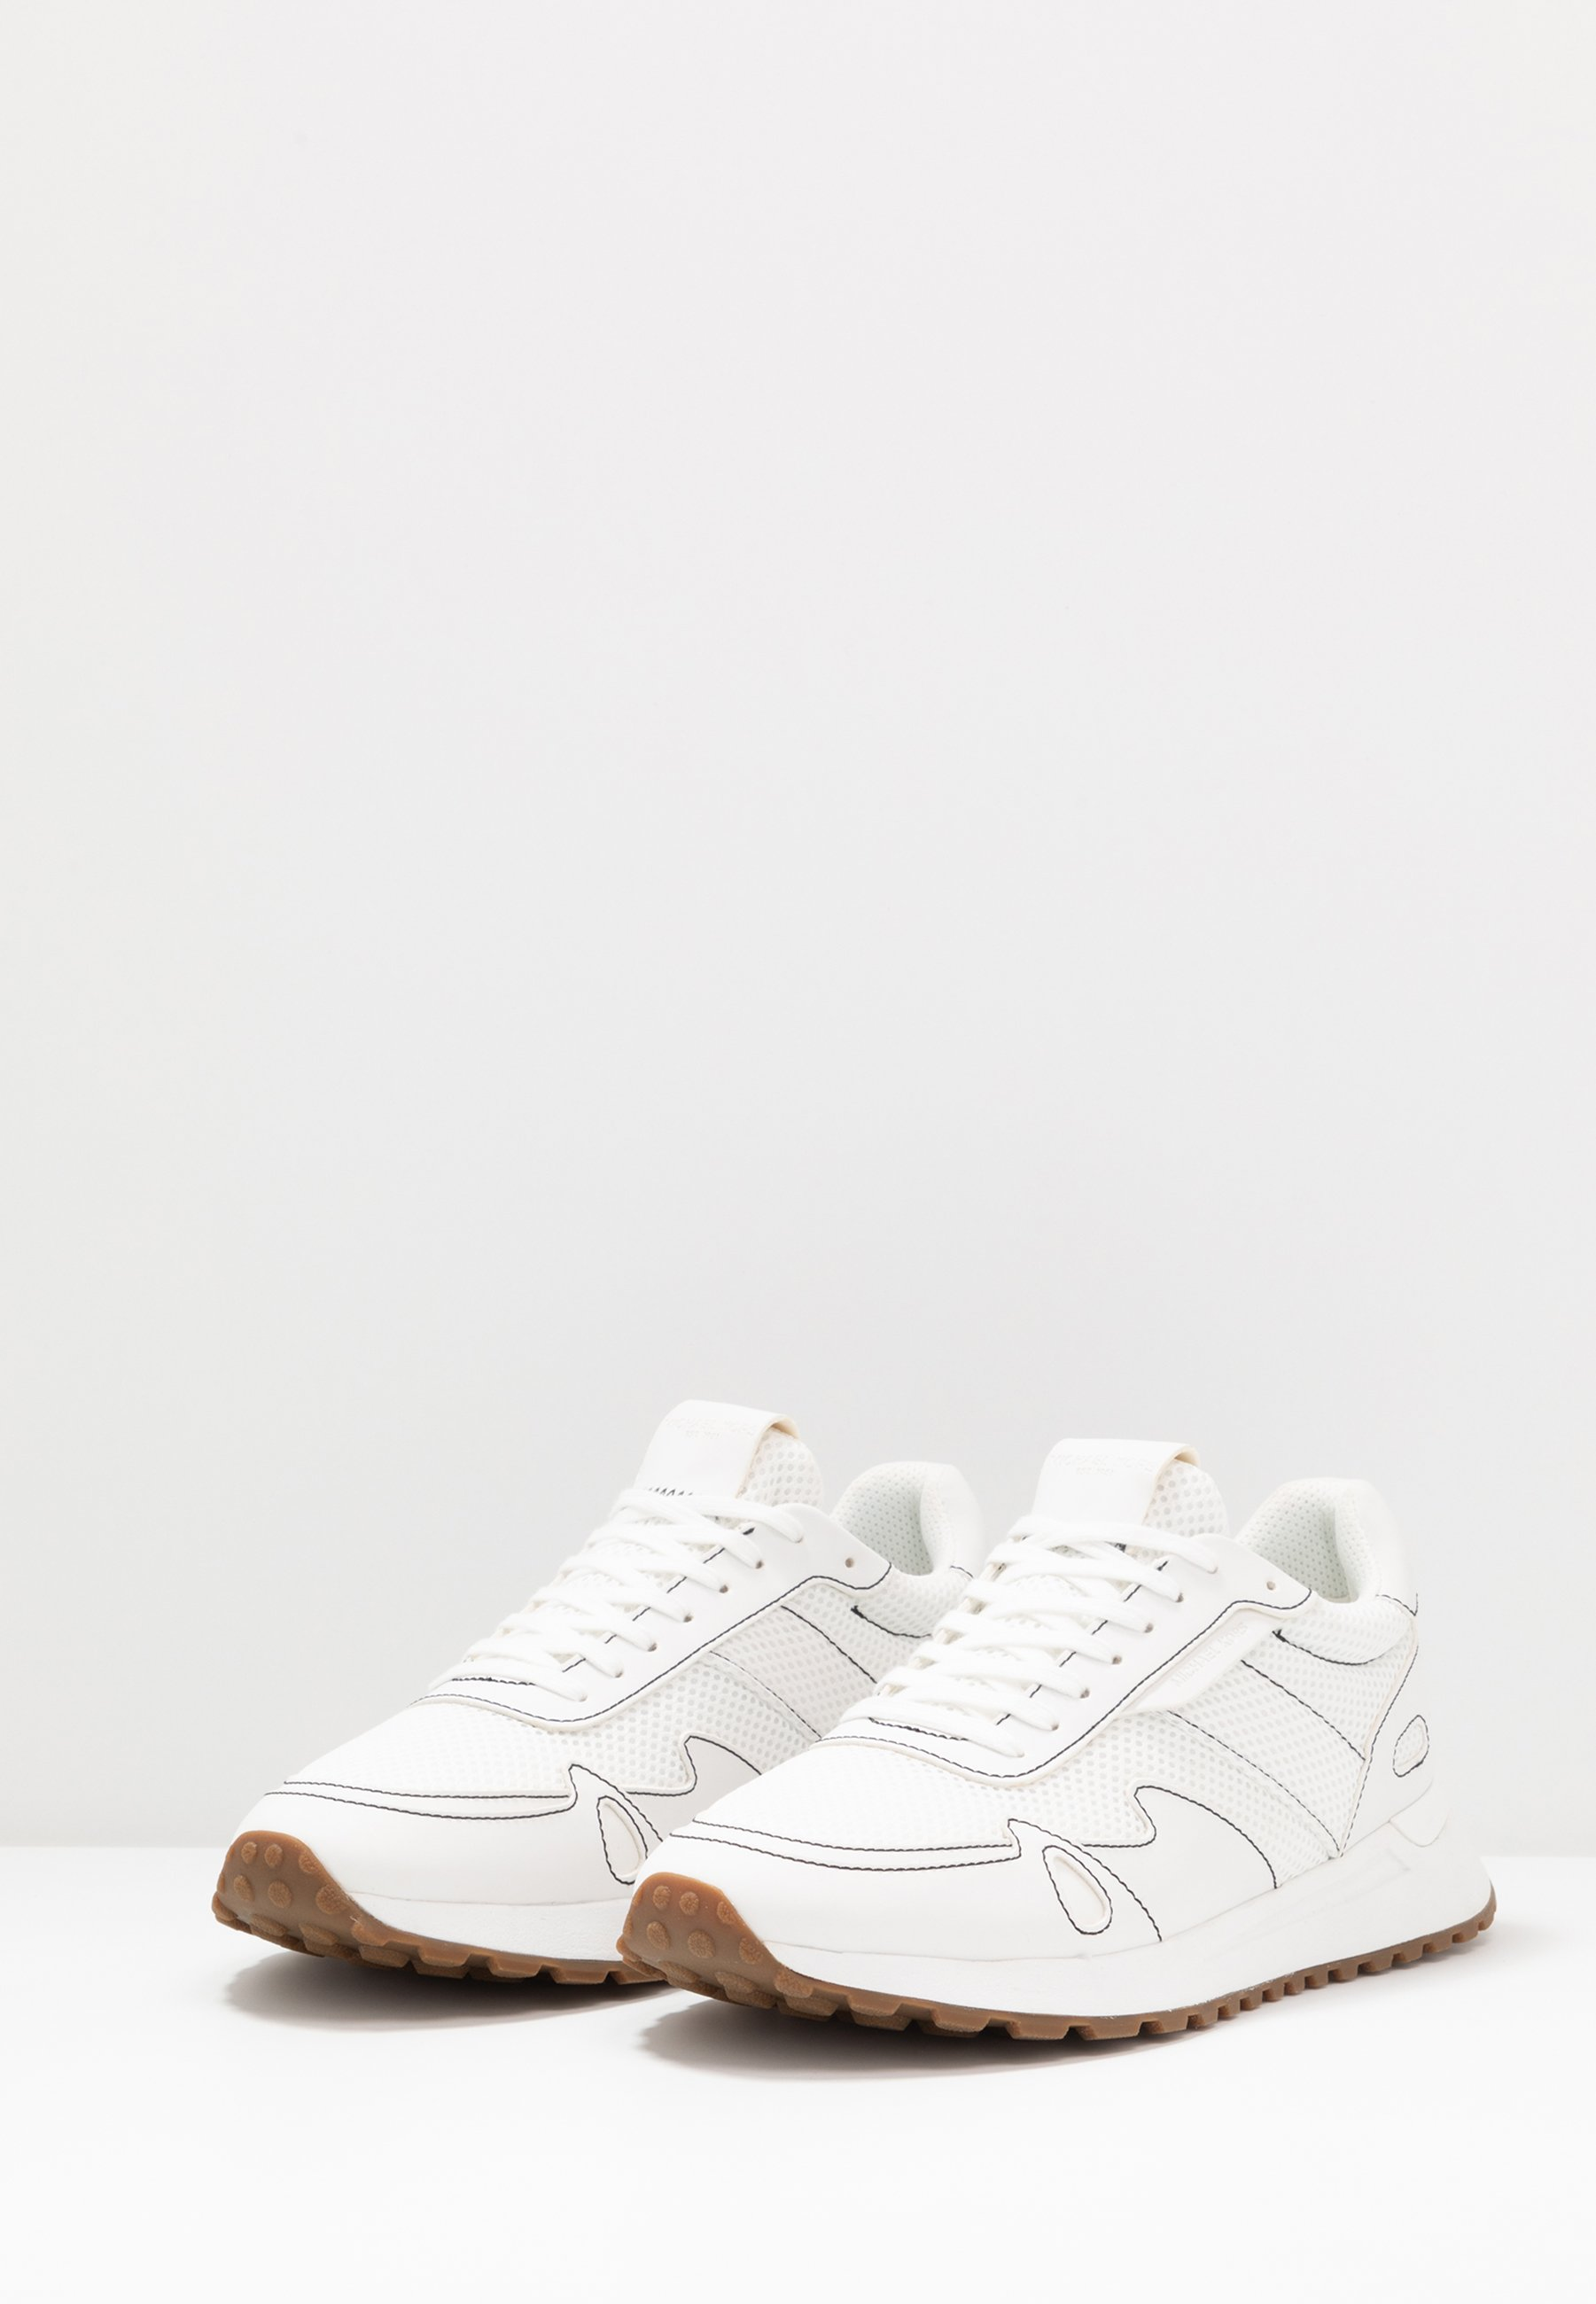 Michael Kors MILES - Sneakers - optic white